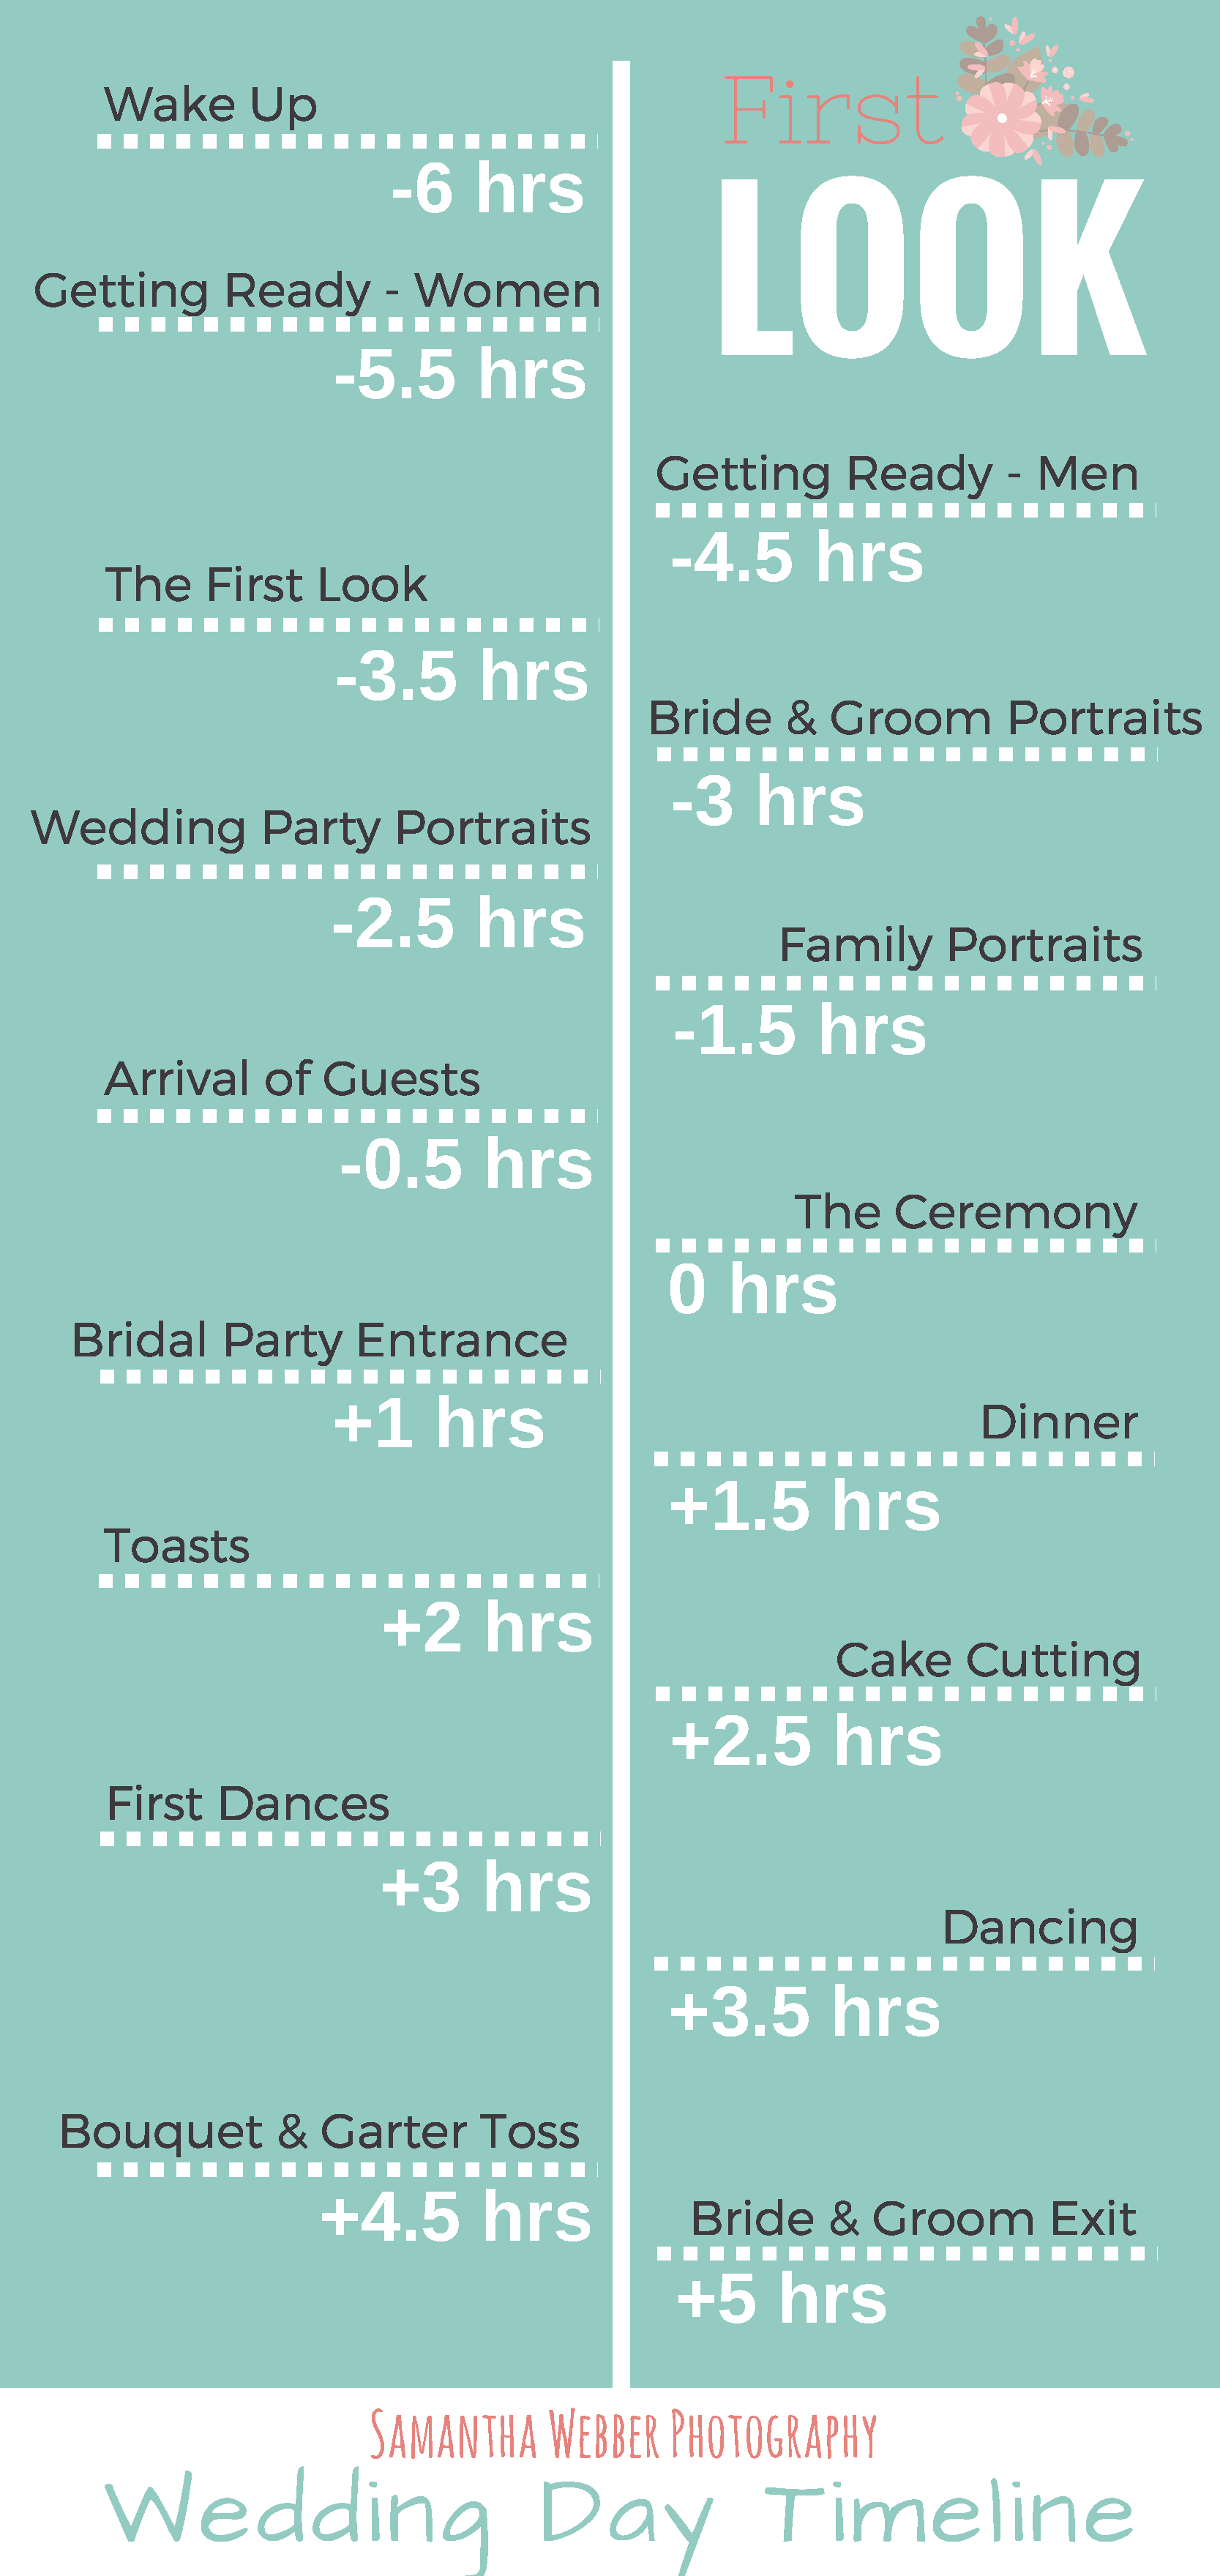 Planning Your Wedding Day Timeline Can Be Difficult Check Out